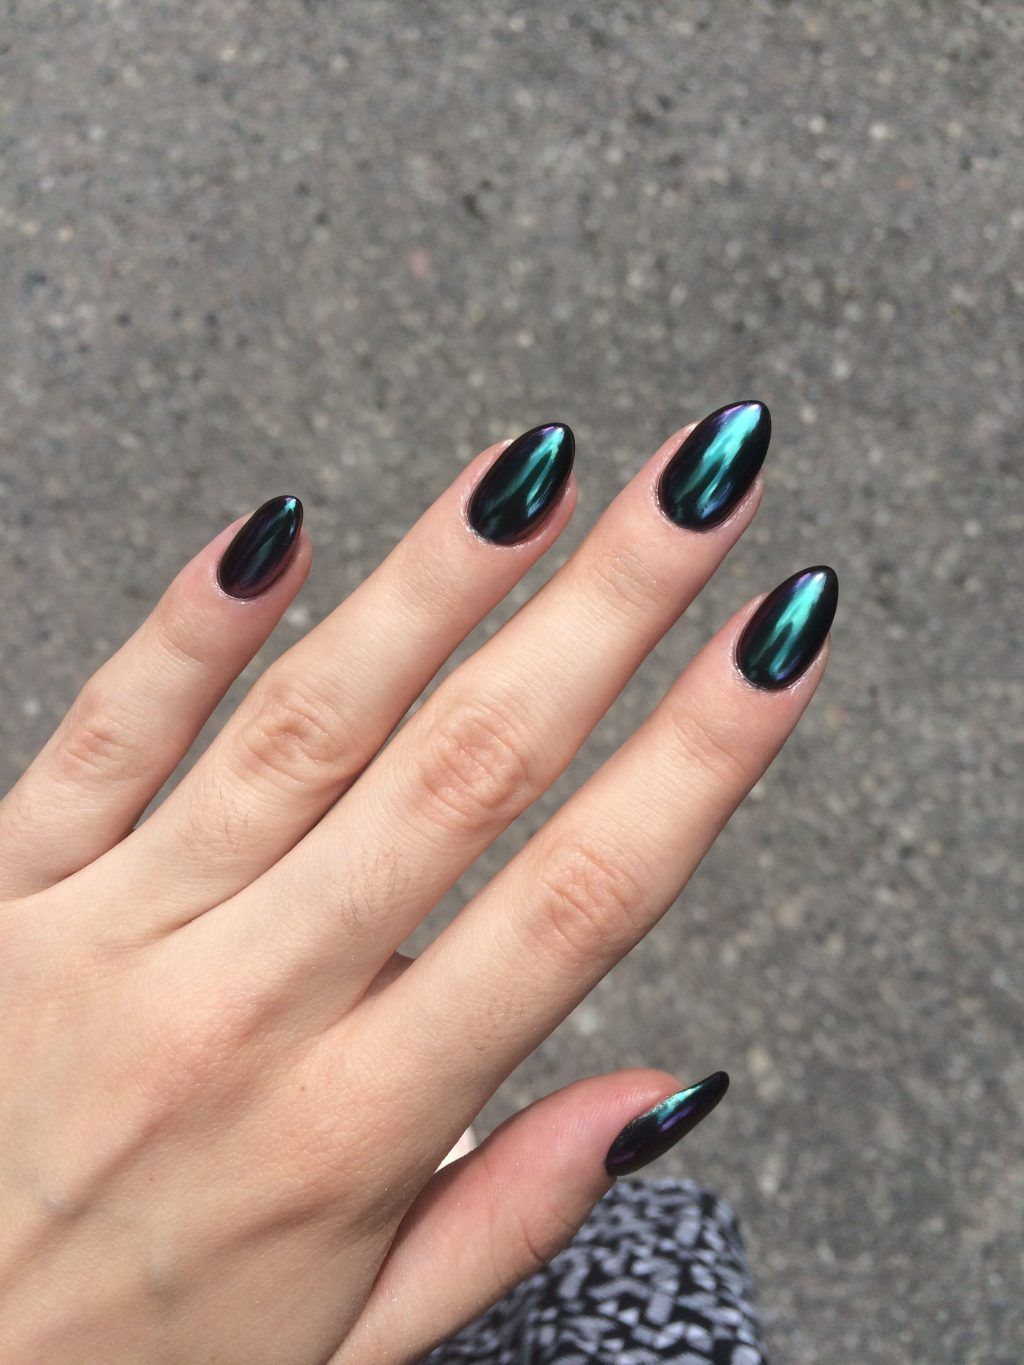 Top 10 Most Luxurious Nail Designs for 2020 | Pouted.com